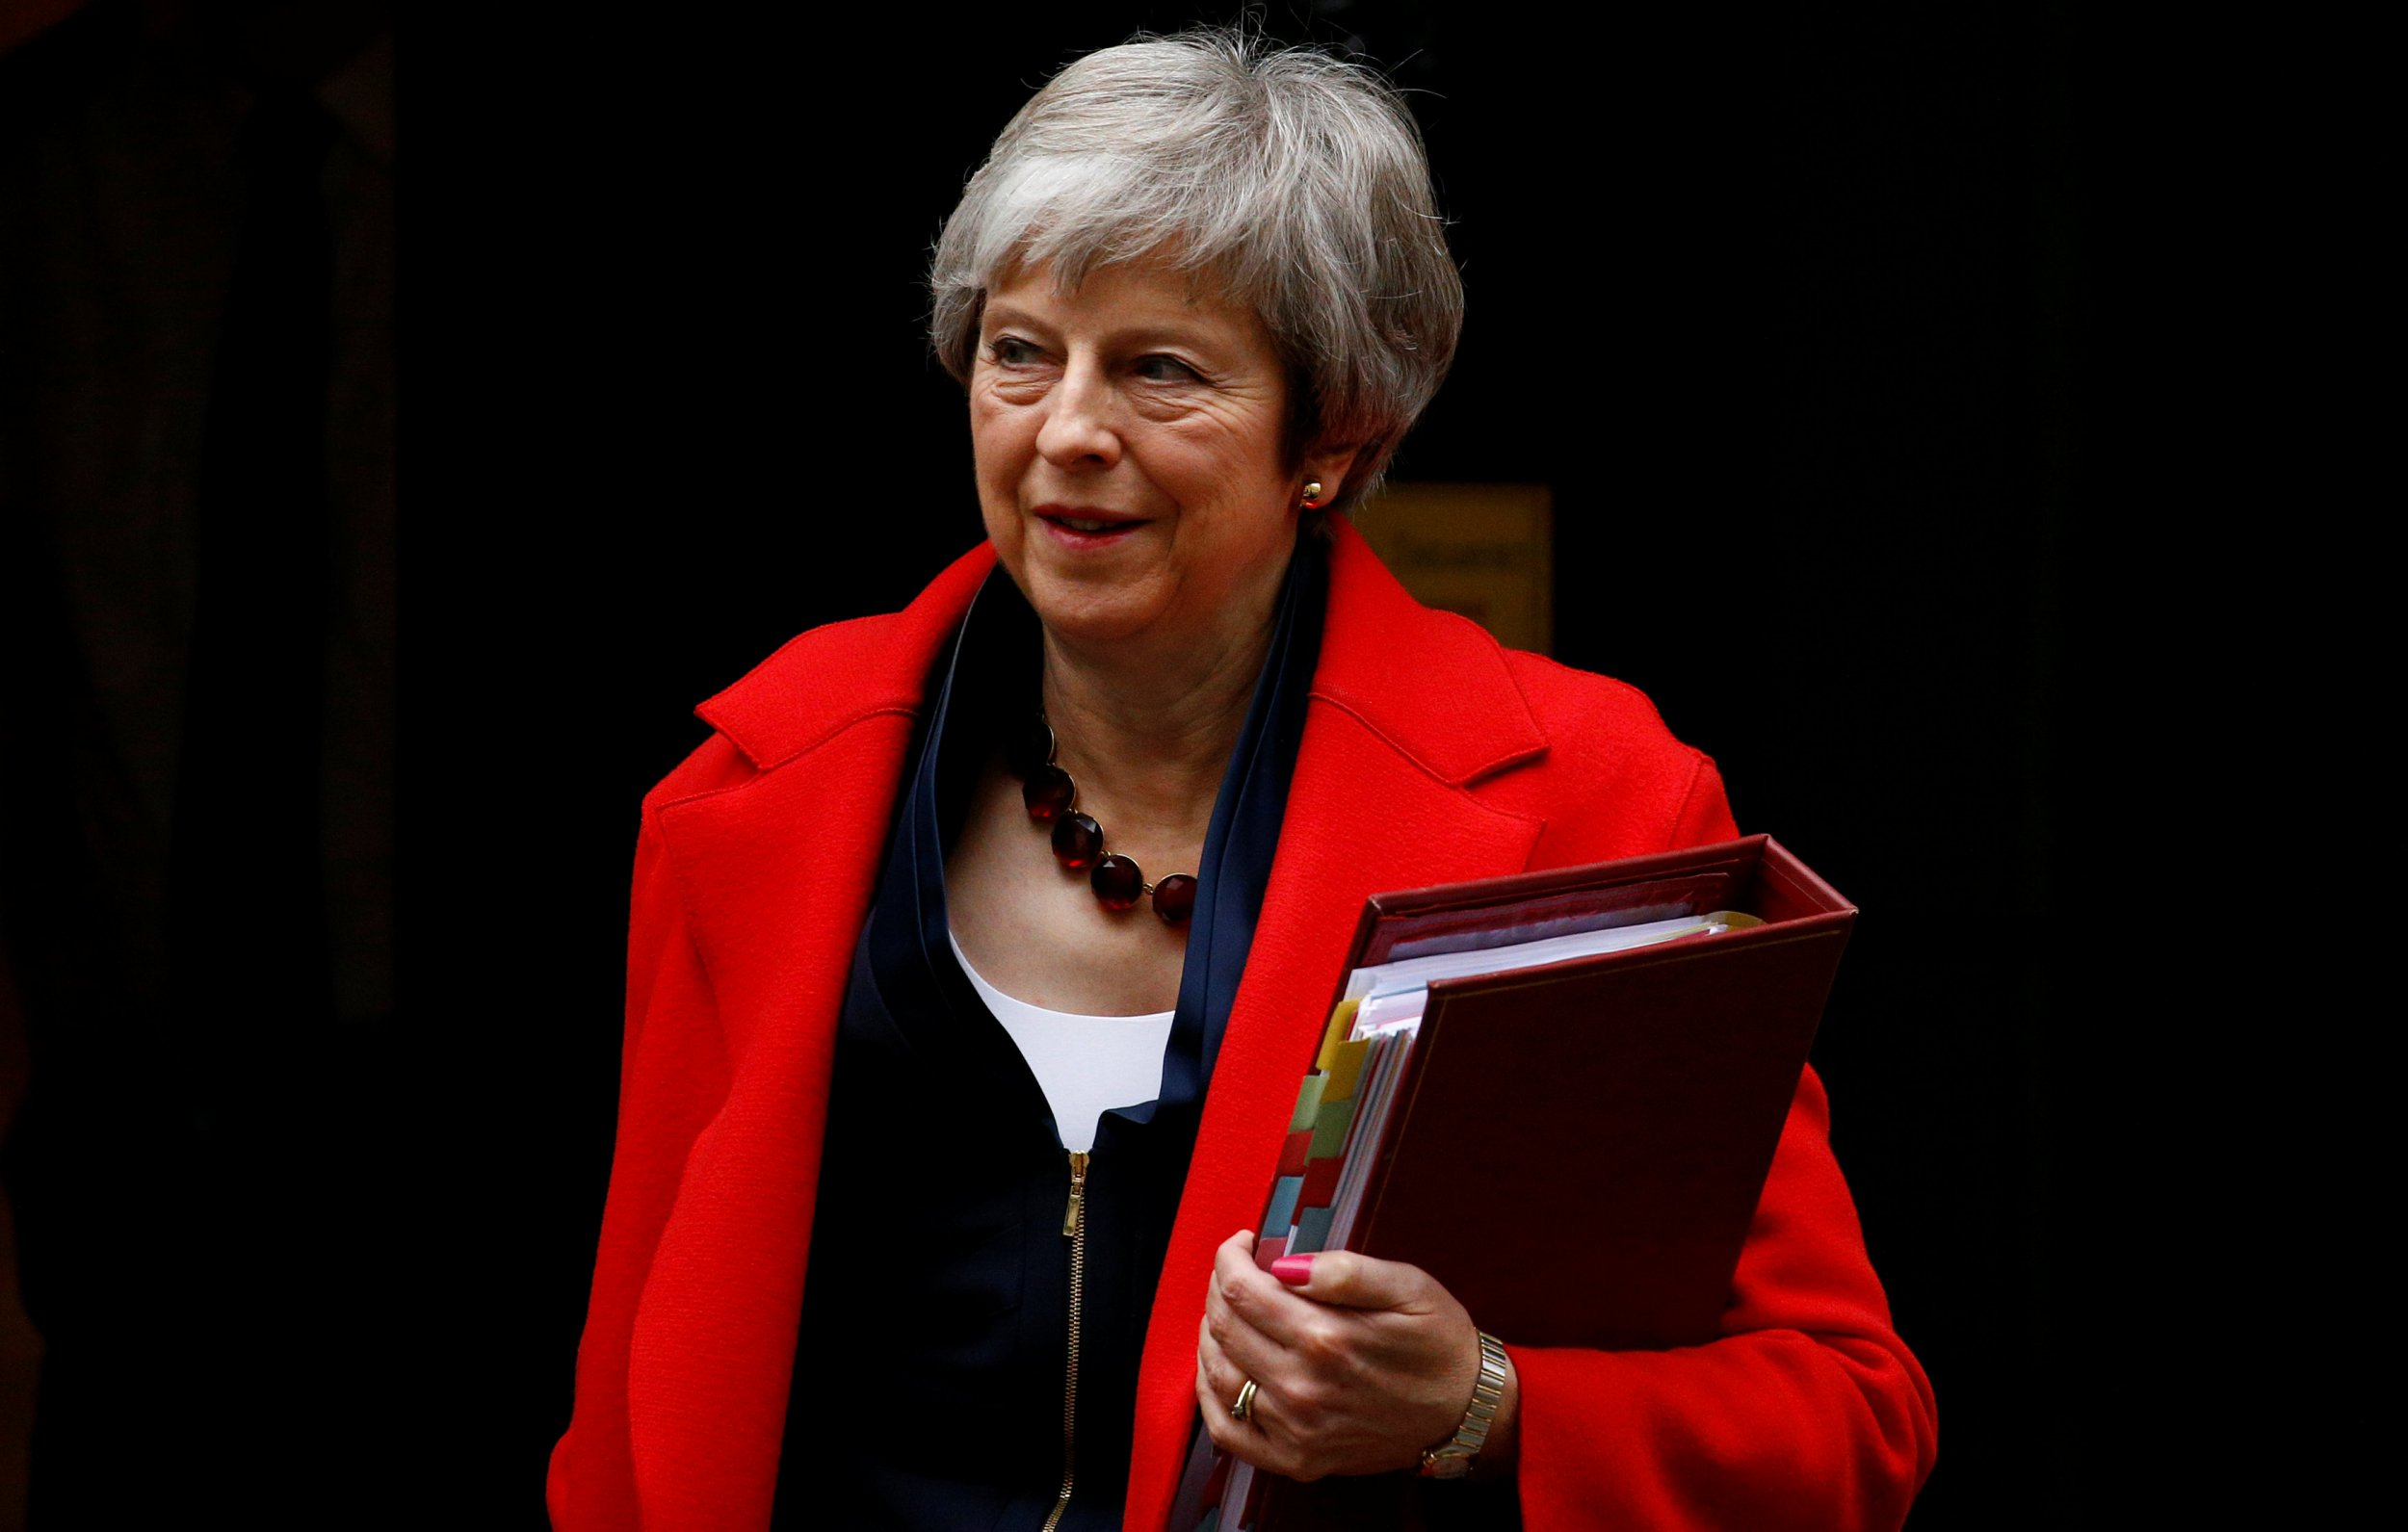 Britain's Prime Minister Theresa May leaves 10 in Downing Street in London, Britain, November 28, 2018. REUTERS/Henry Nicholls